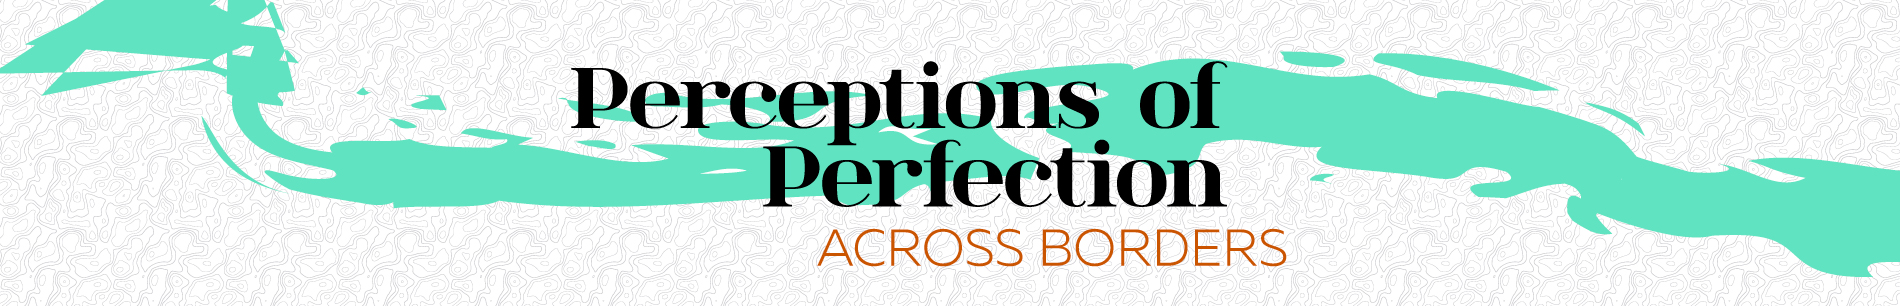 Perceptions Of Perfection Superdrug